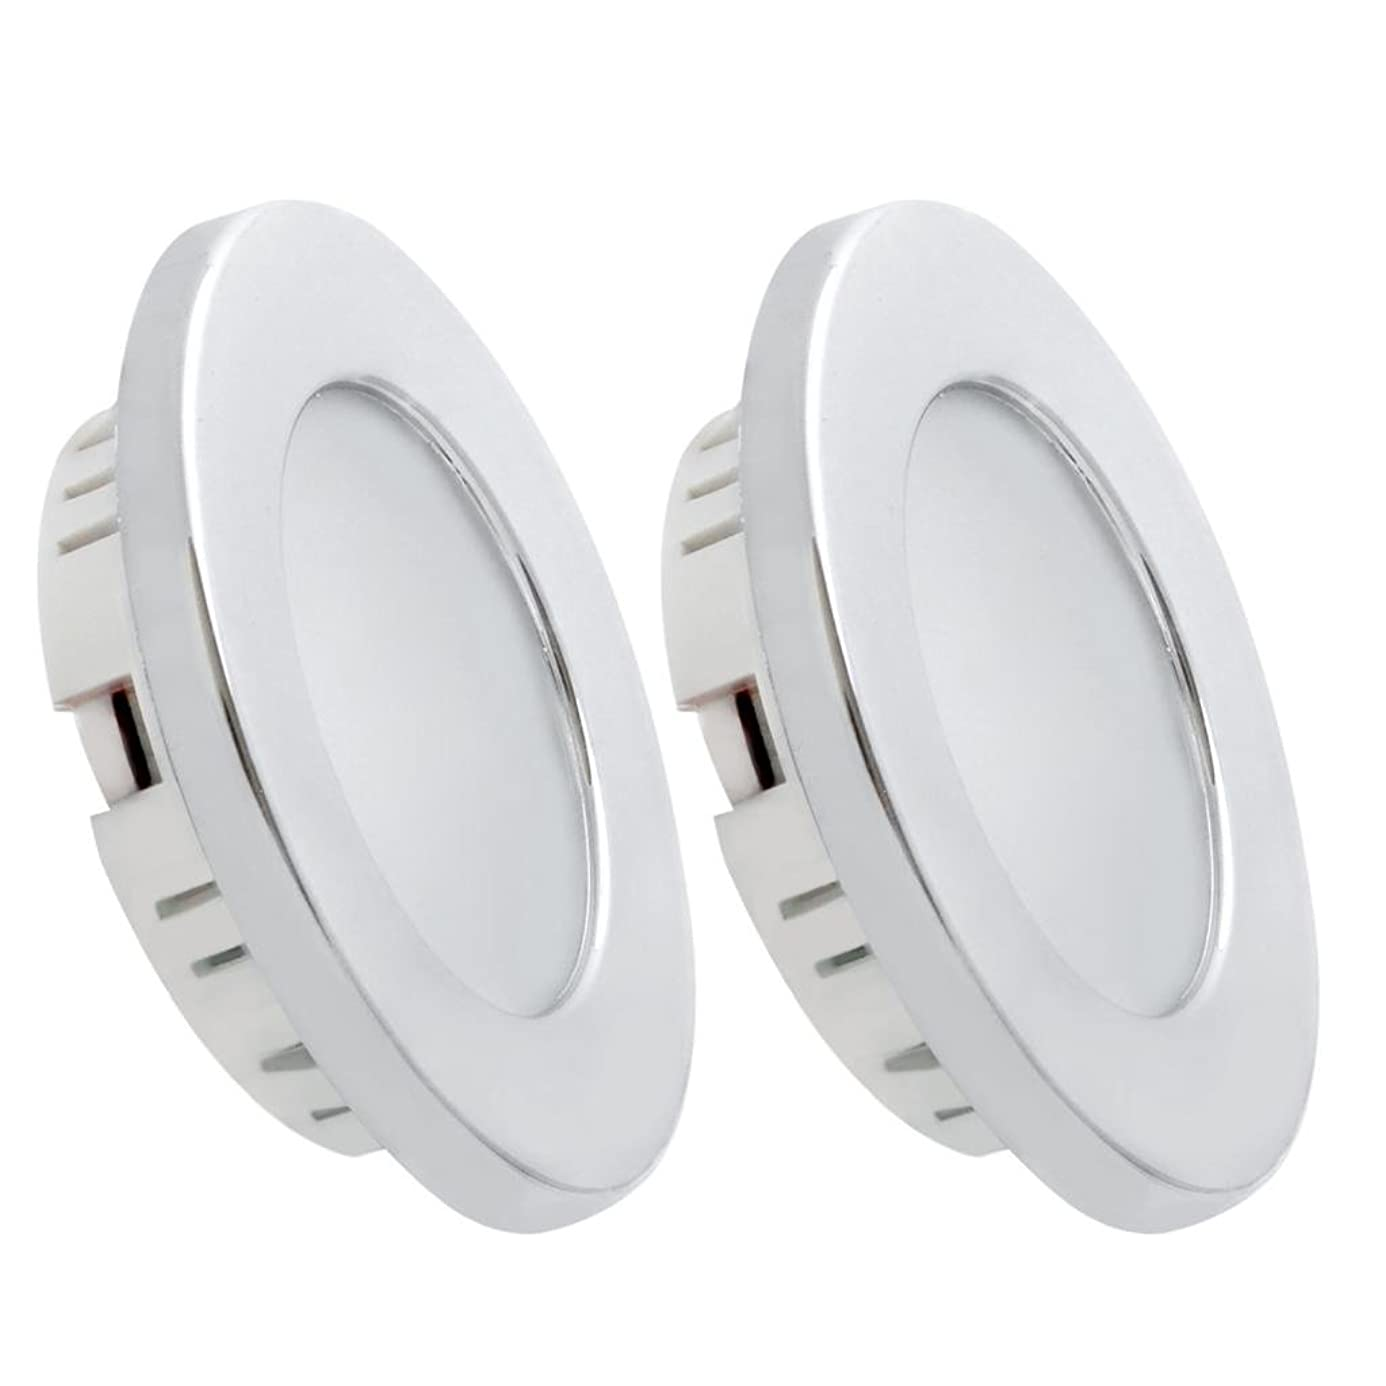 Dream Lighting 12volt LED Recessed Downlight for RV Motorhome Trailer Boat Cabin Compartment Stateroom Interior Ceiling Lighting-Dimmable Warm White, Silver Housing, Pack of 2 ymx9104365